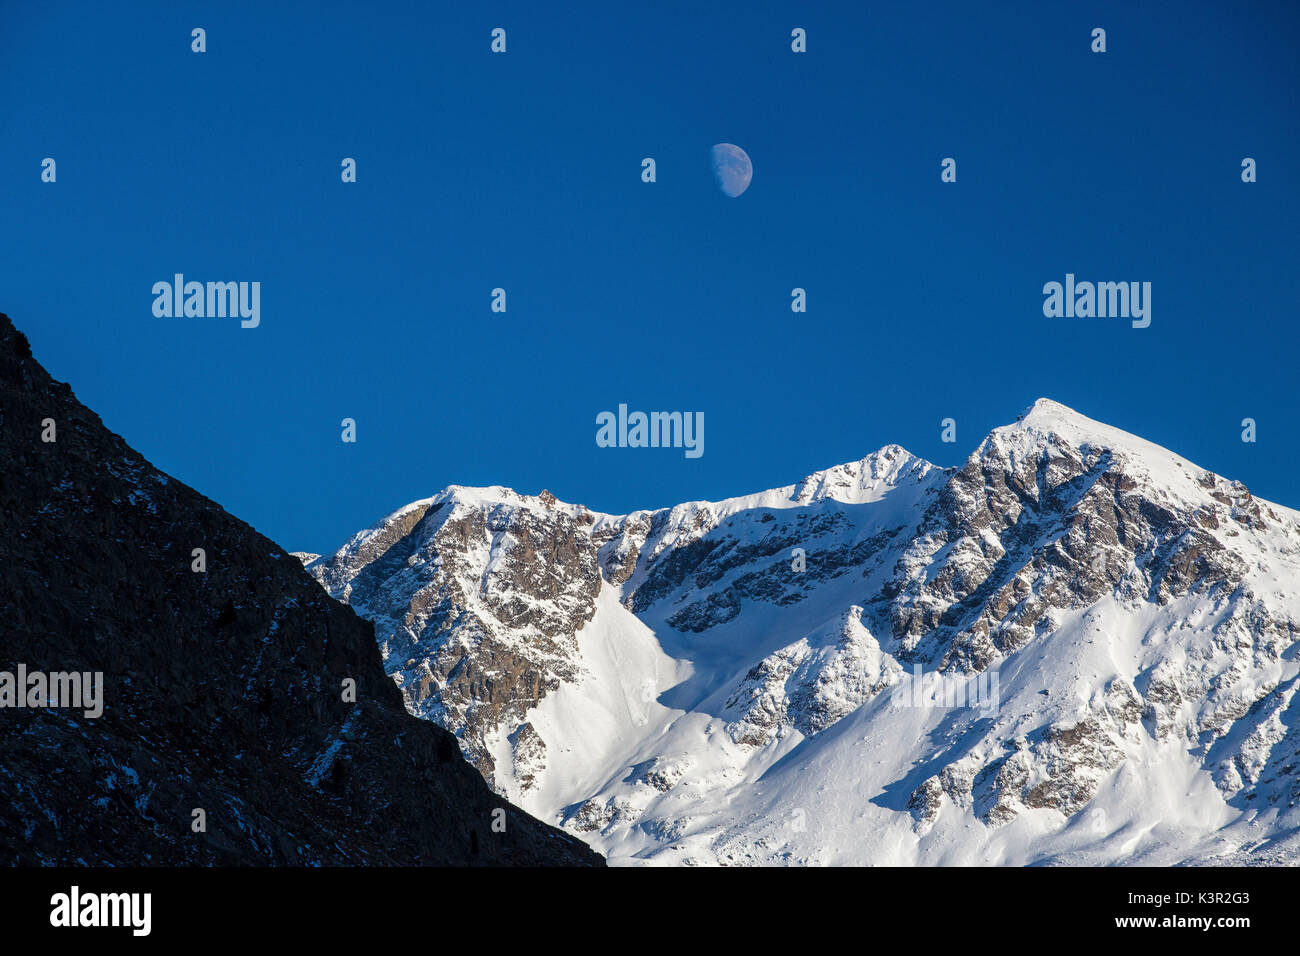 The moon appears above the snowy peaks in the blue sky Julierpass Albula District Canton of Graubünden Switzerland Europe - Stock Image